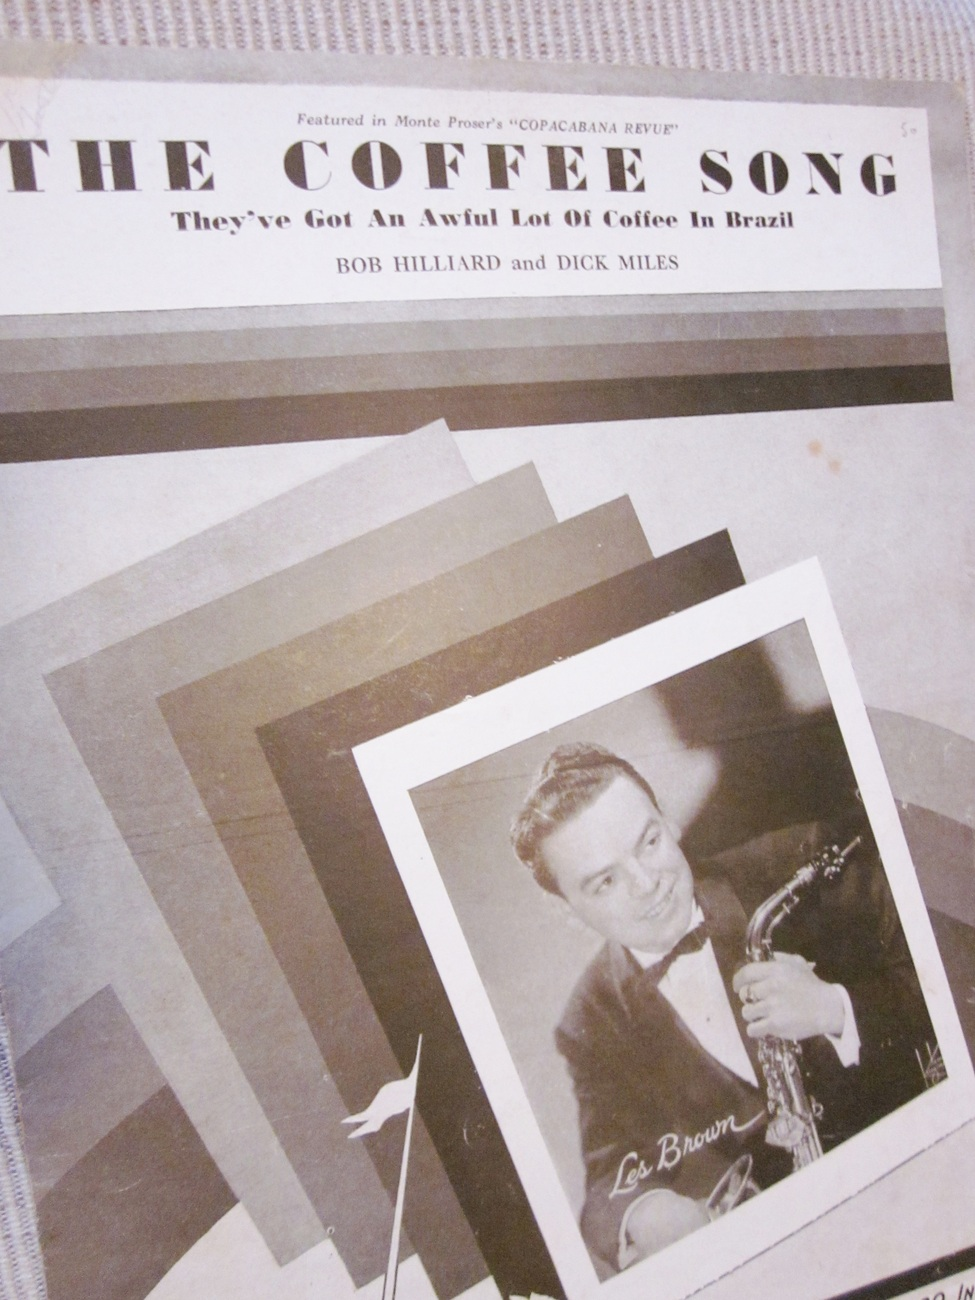 Vintage Sheet Music The Coffee Song by Hilliard and Miles - Les Brown 1946